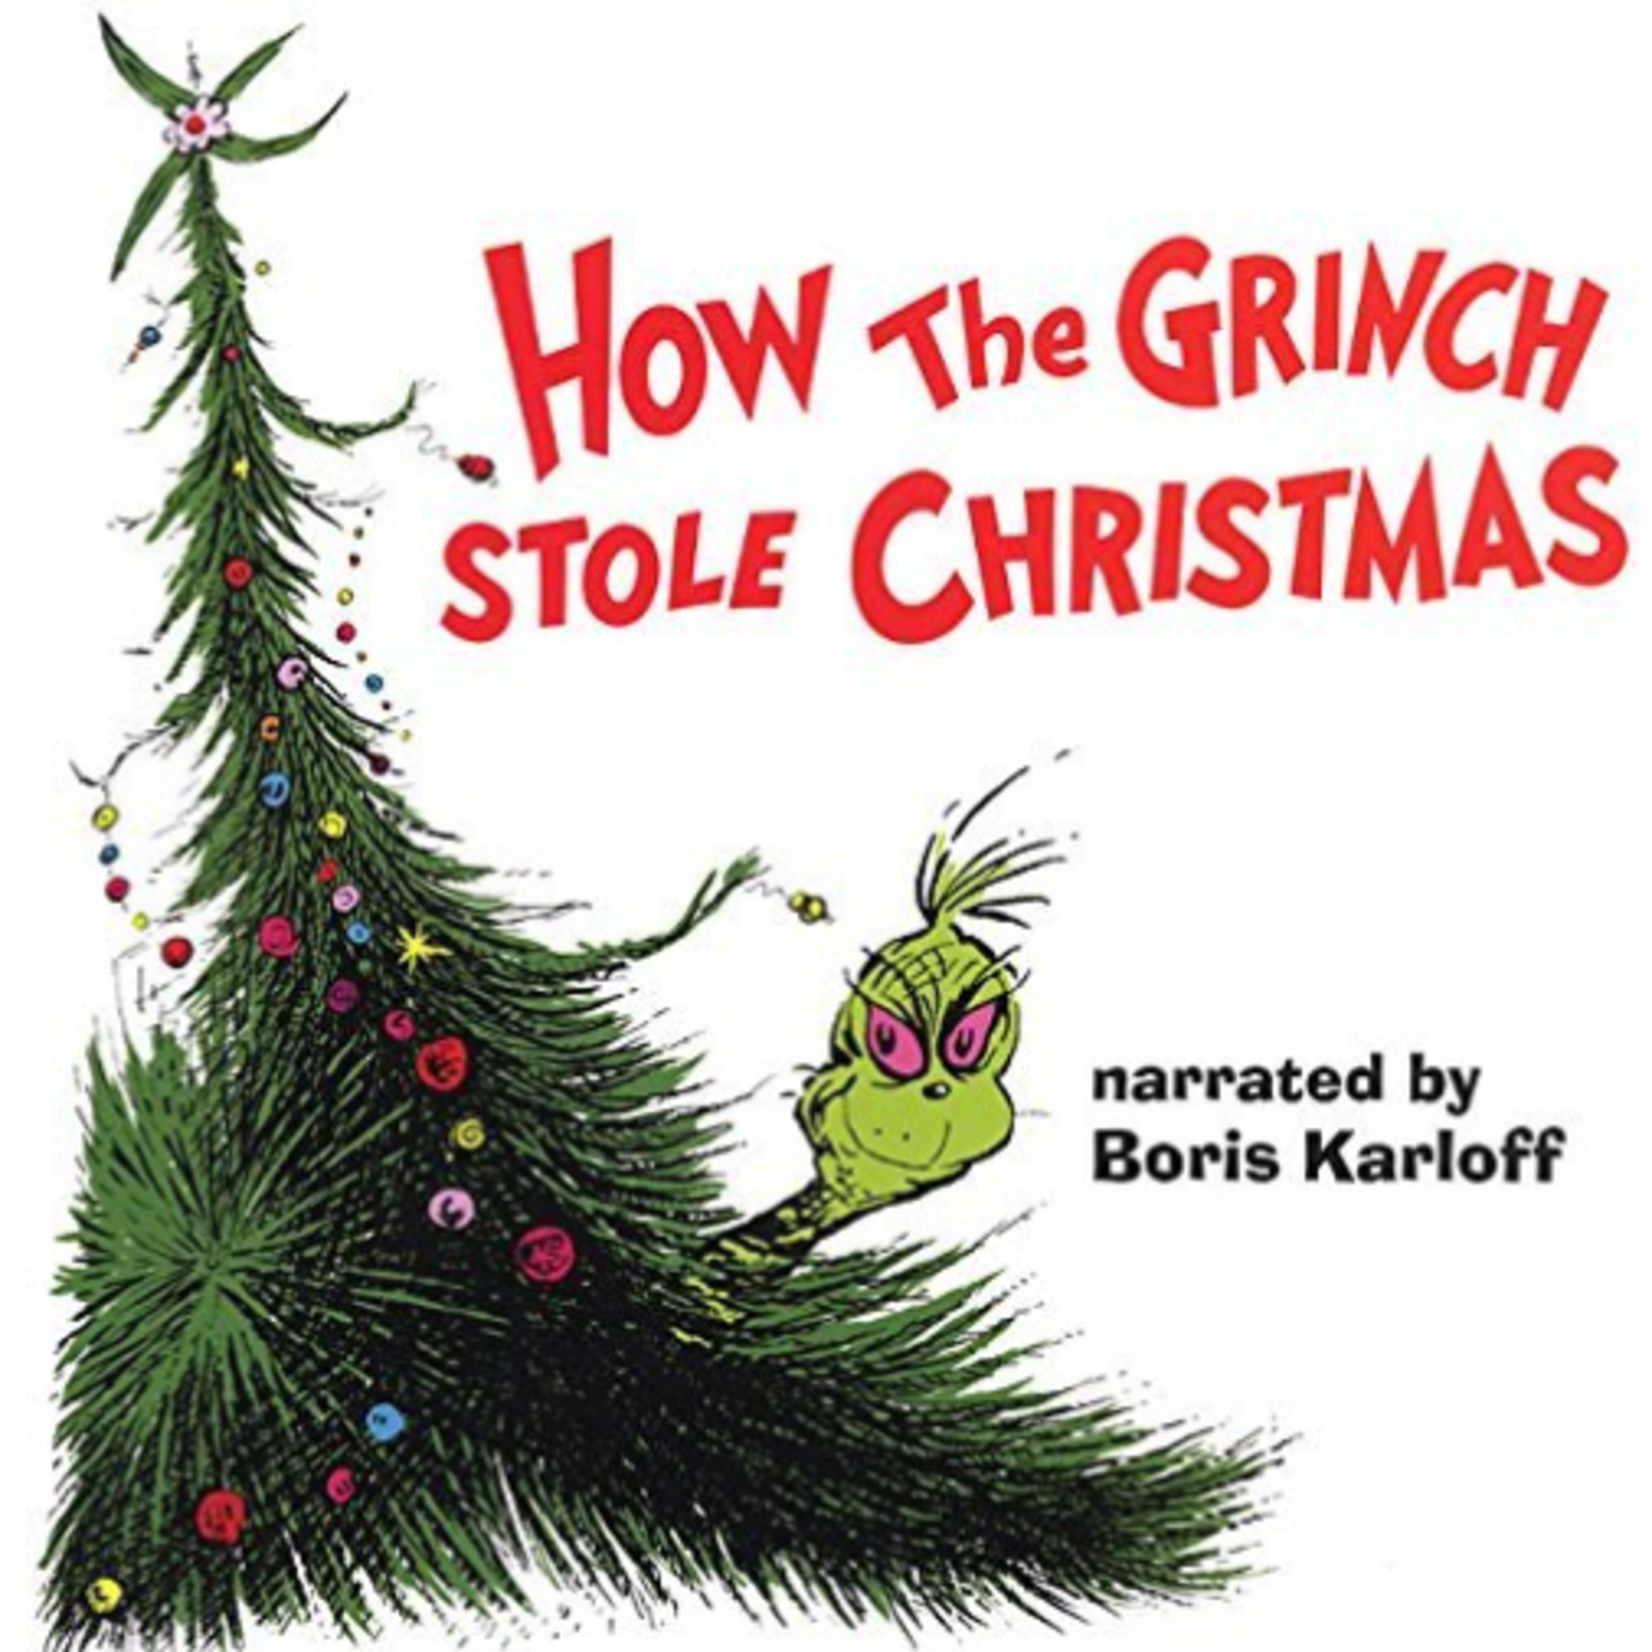 DR. SEUSS HOW THE GRINCH STOLE CHRISTMAS (NARRATED BY BORIS KARLOFF, GRINCH GREEN VINYL)